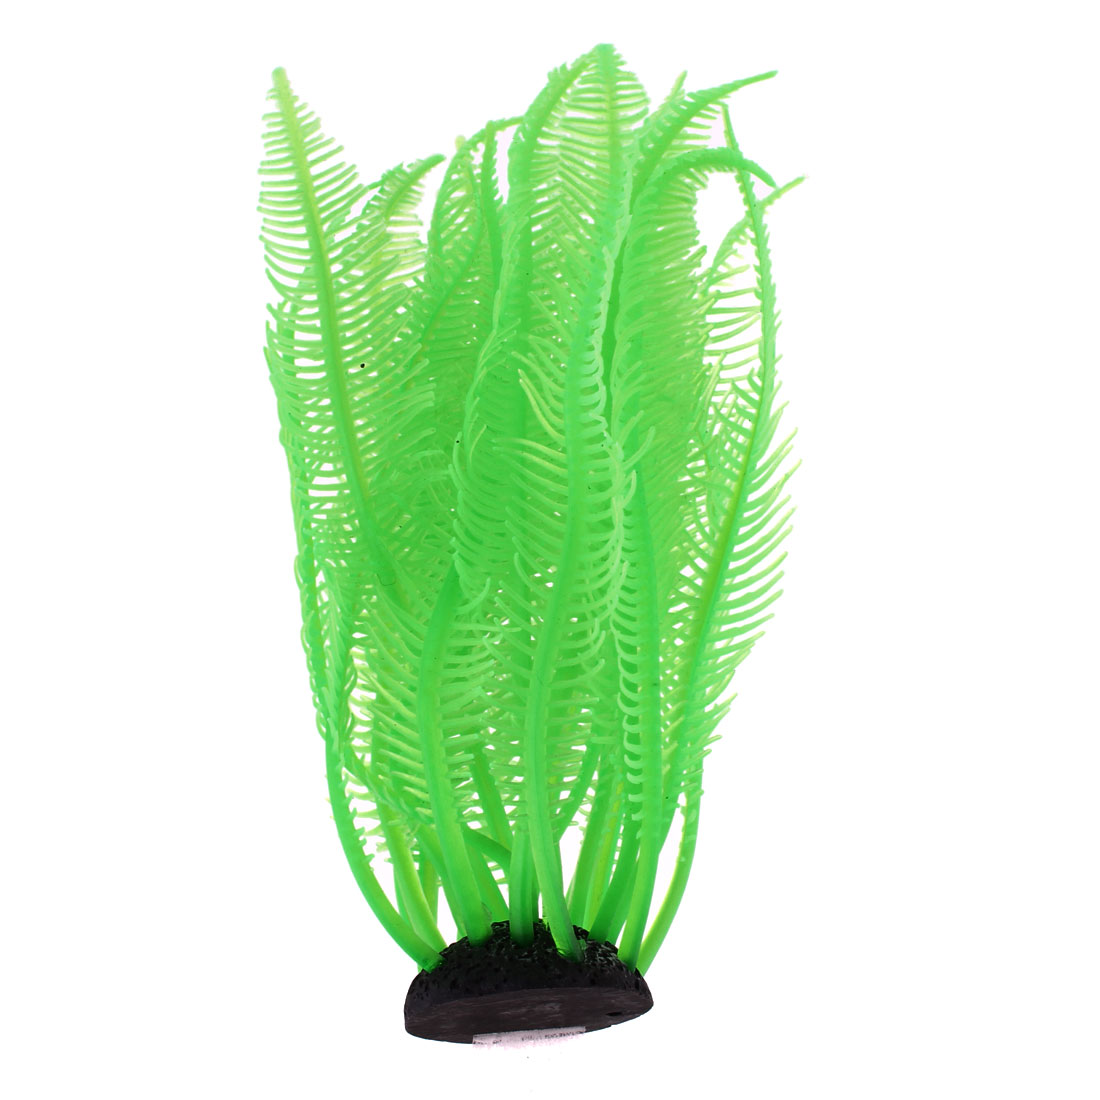 12cm Height Green Silicone Manmade Water Grass Decor for Fish Tank